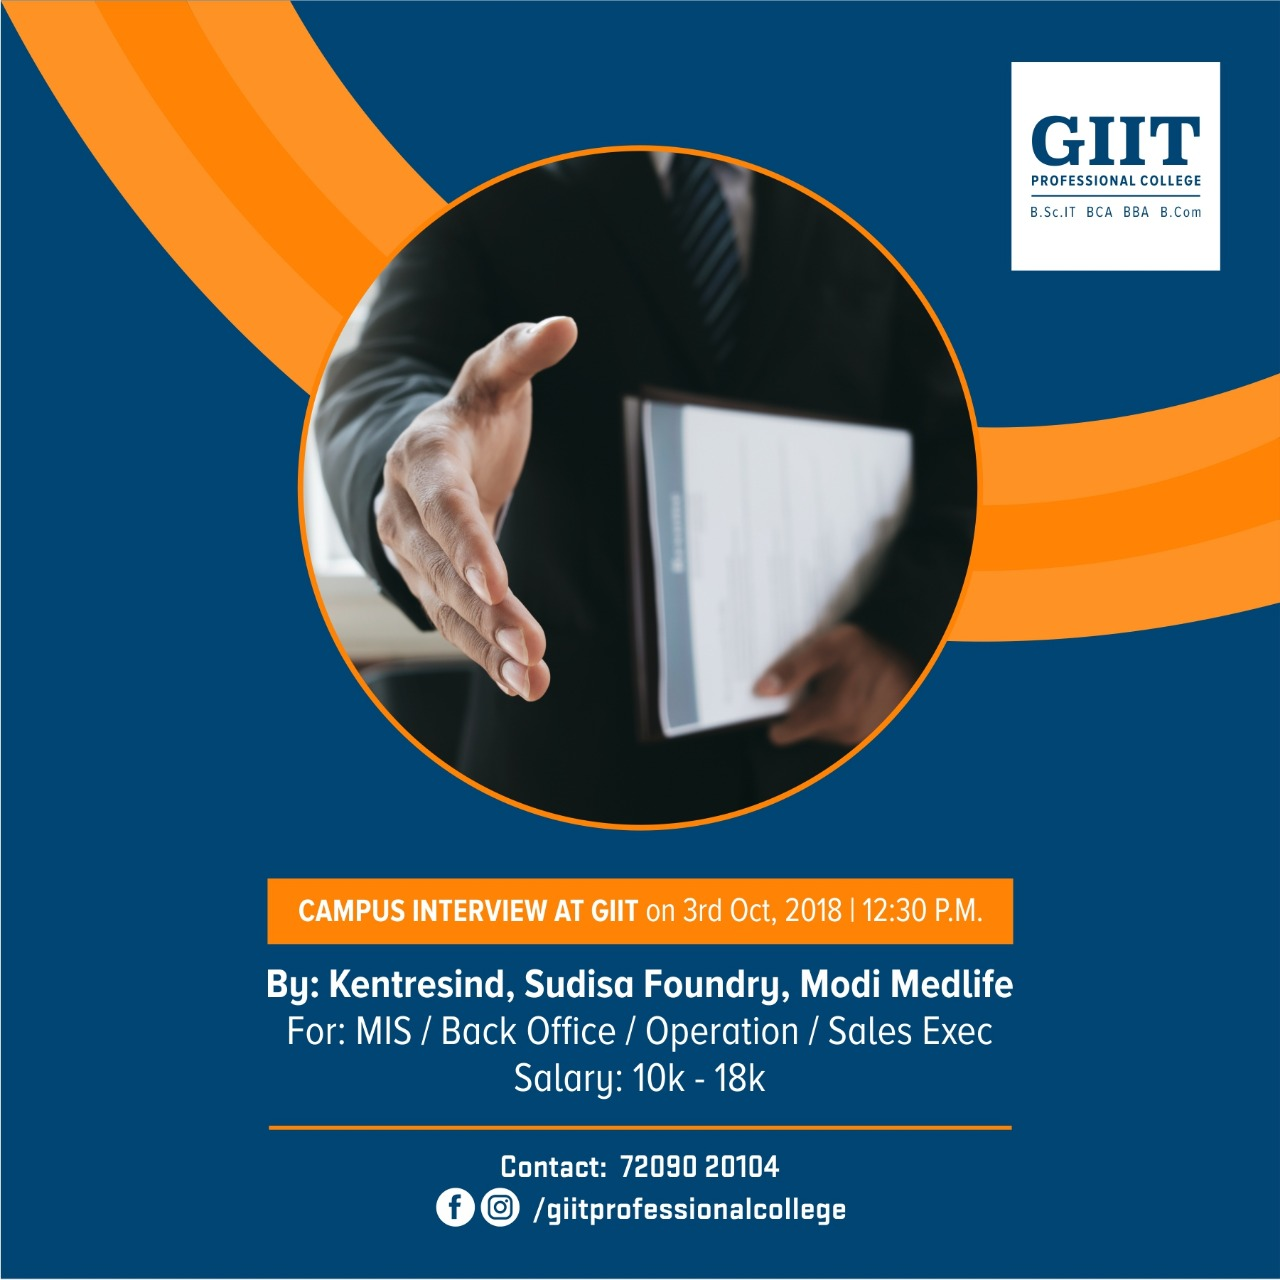 GIIT Professional College